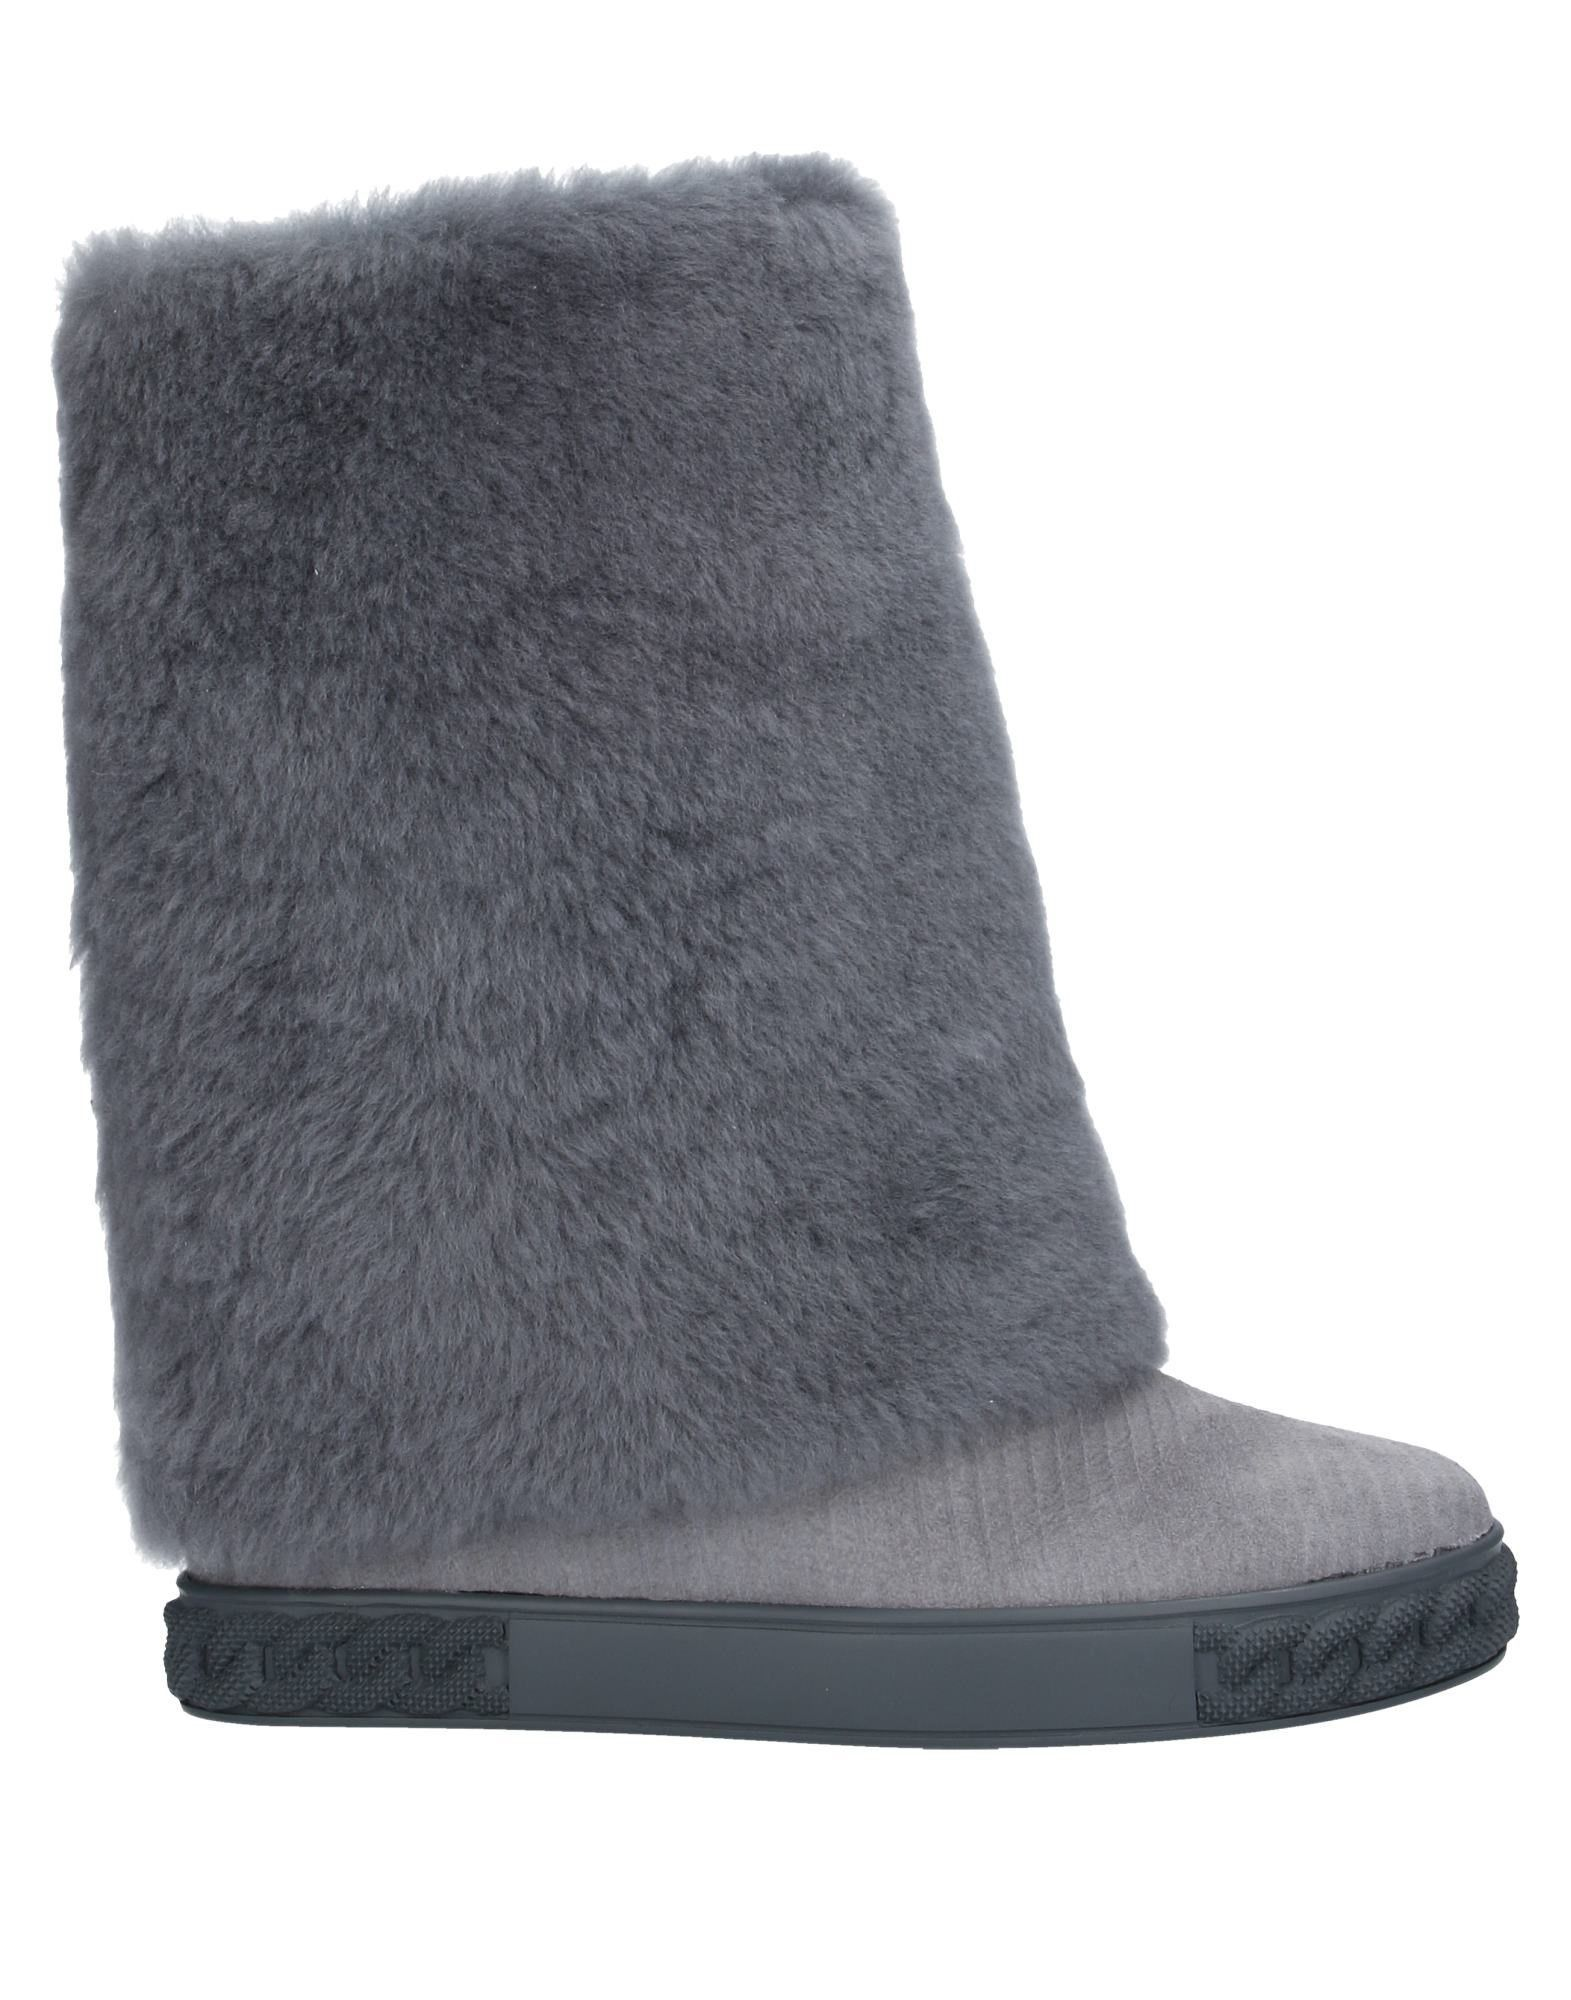 Casadei Grey Leather Boots